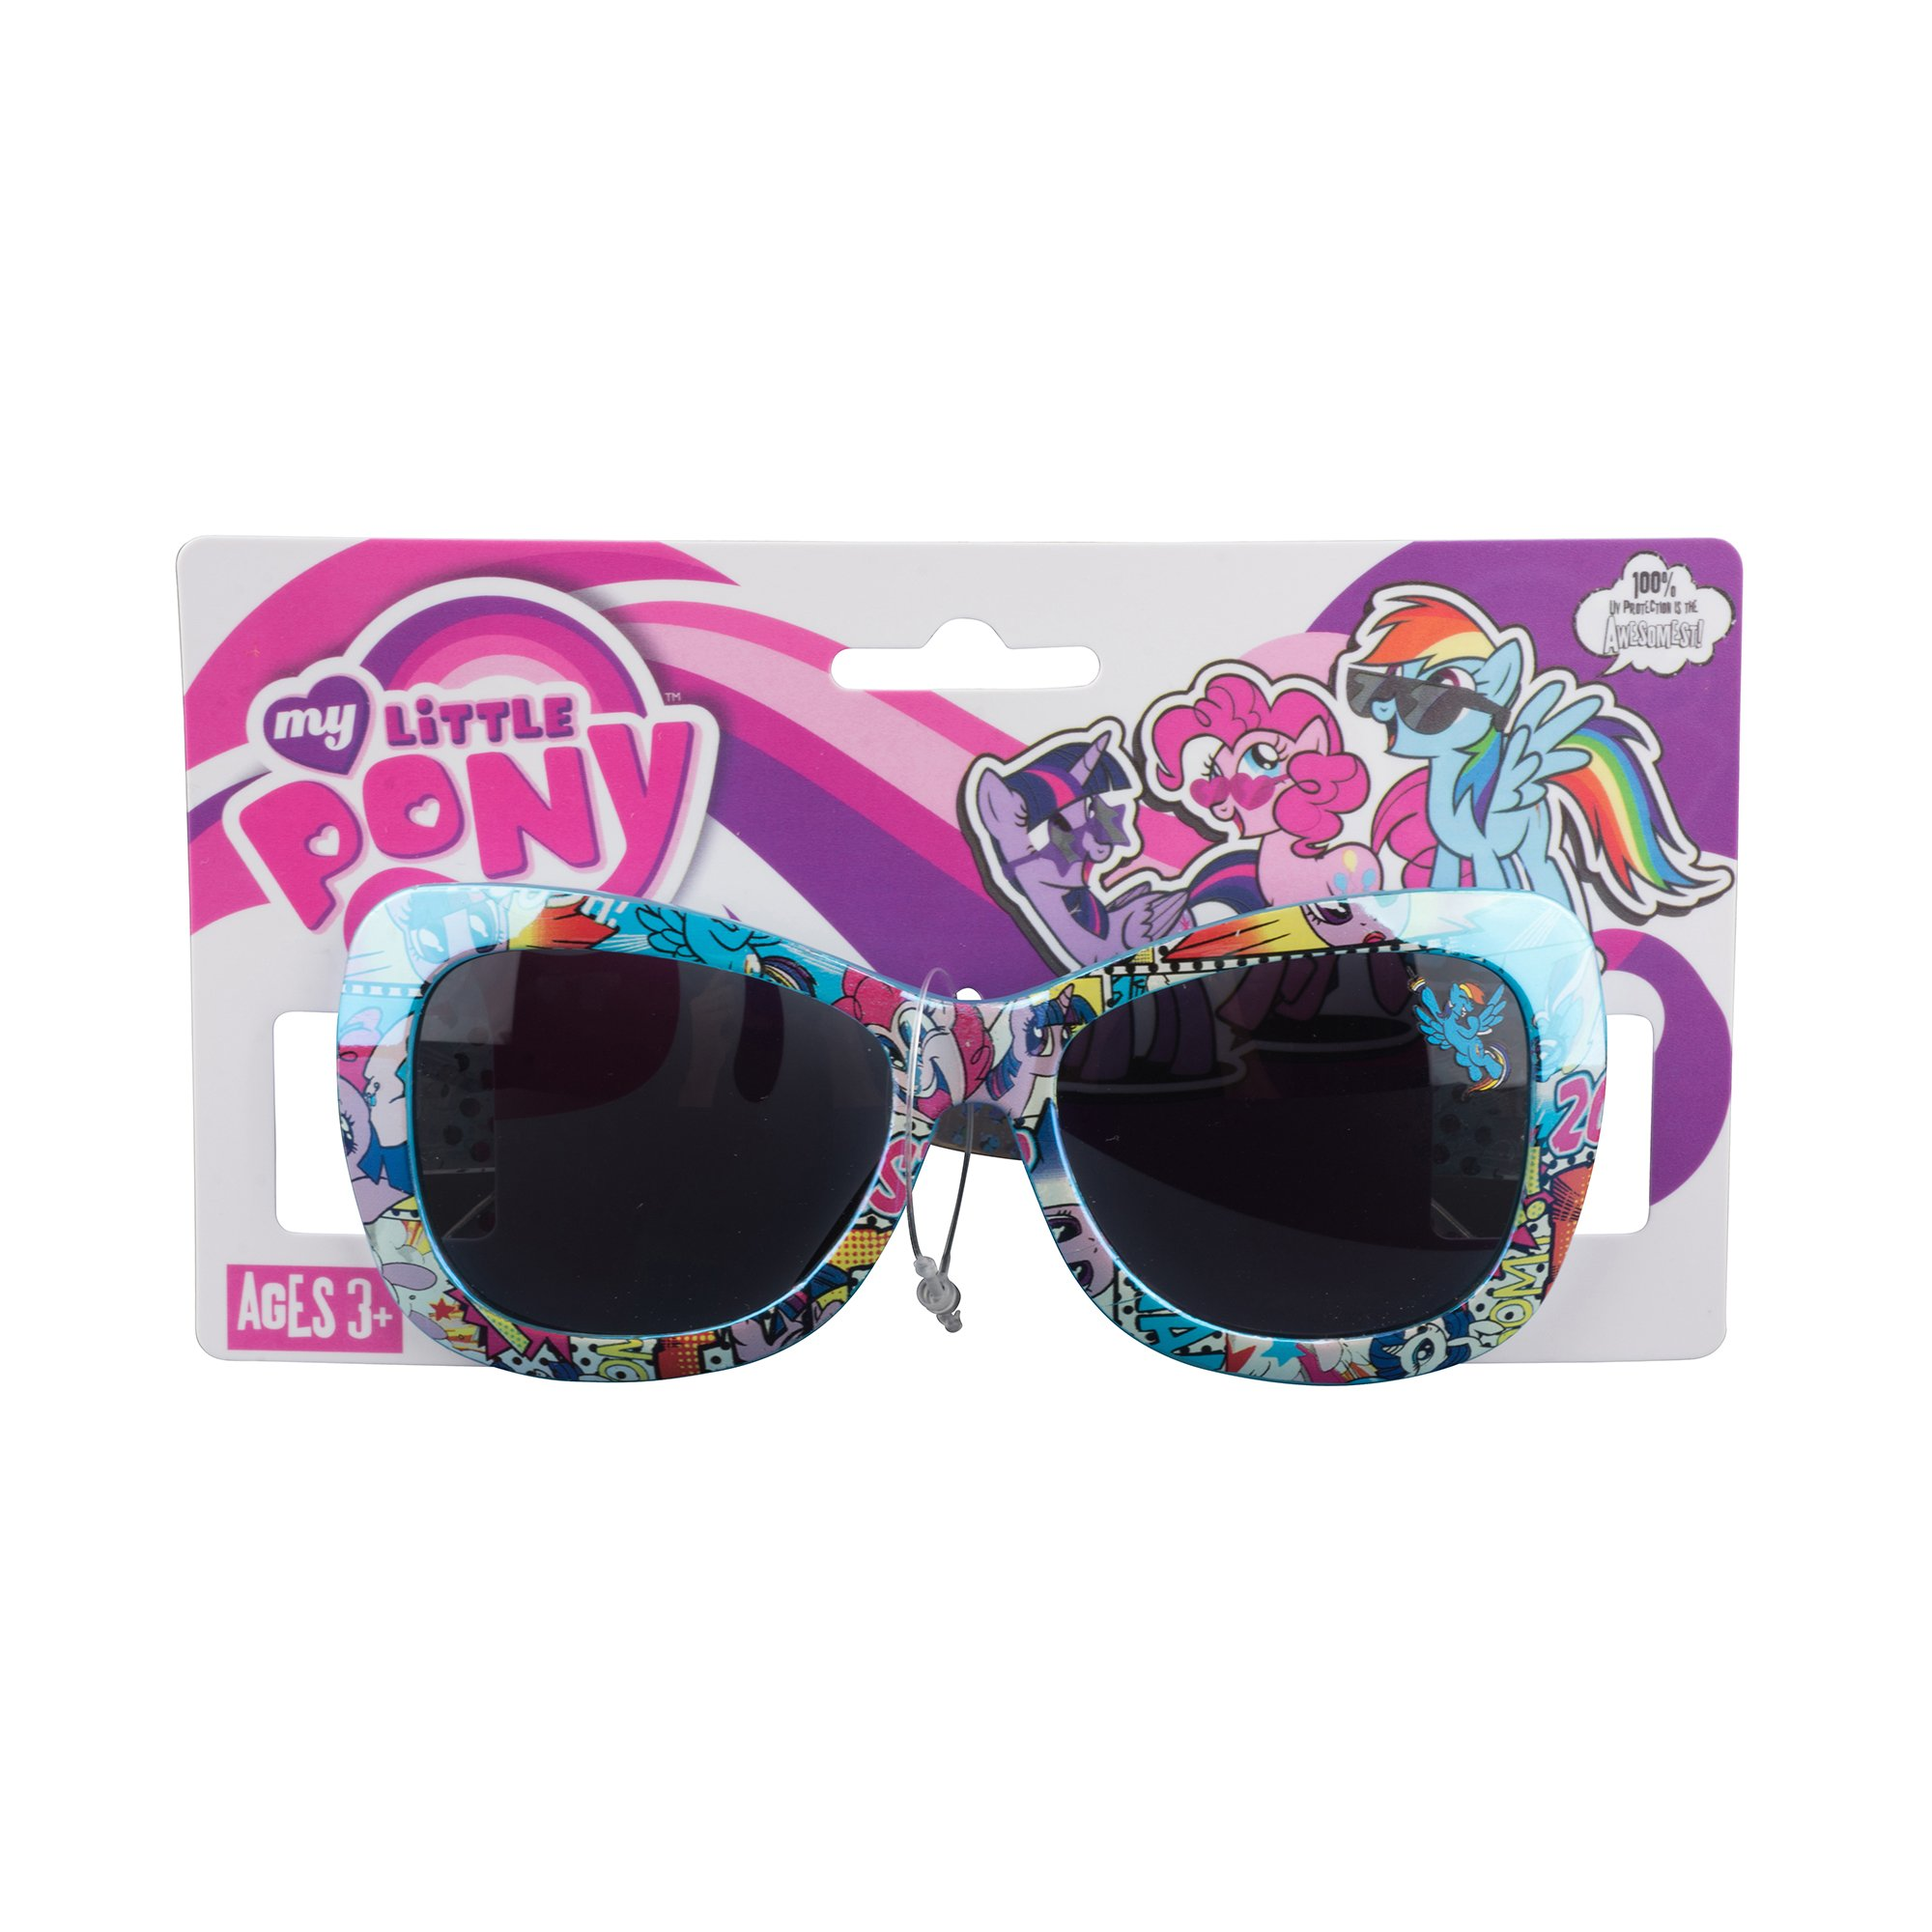 5b81d726e2c KIDS SUNGLASSES – GIRLS FASHION 100% UV SUNGLASSES, JOJO SIWA ...